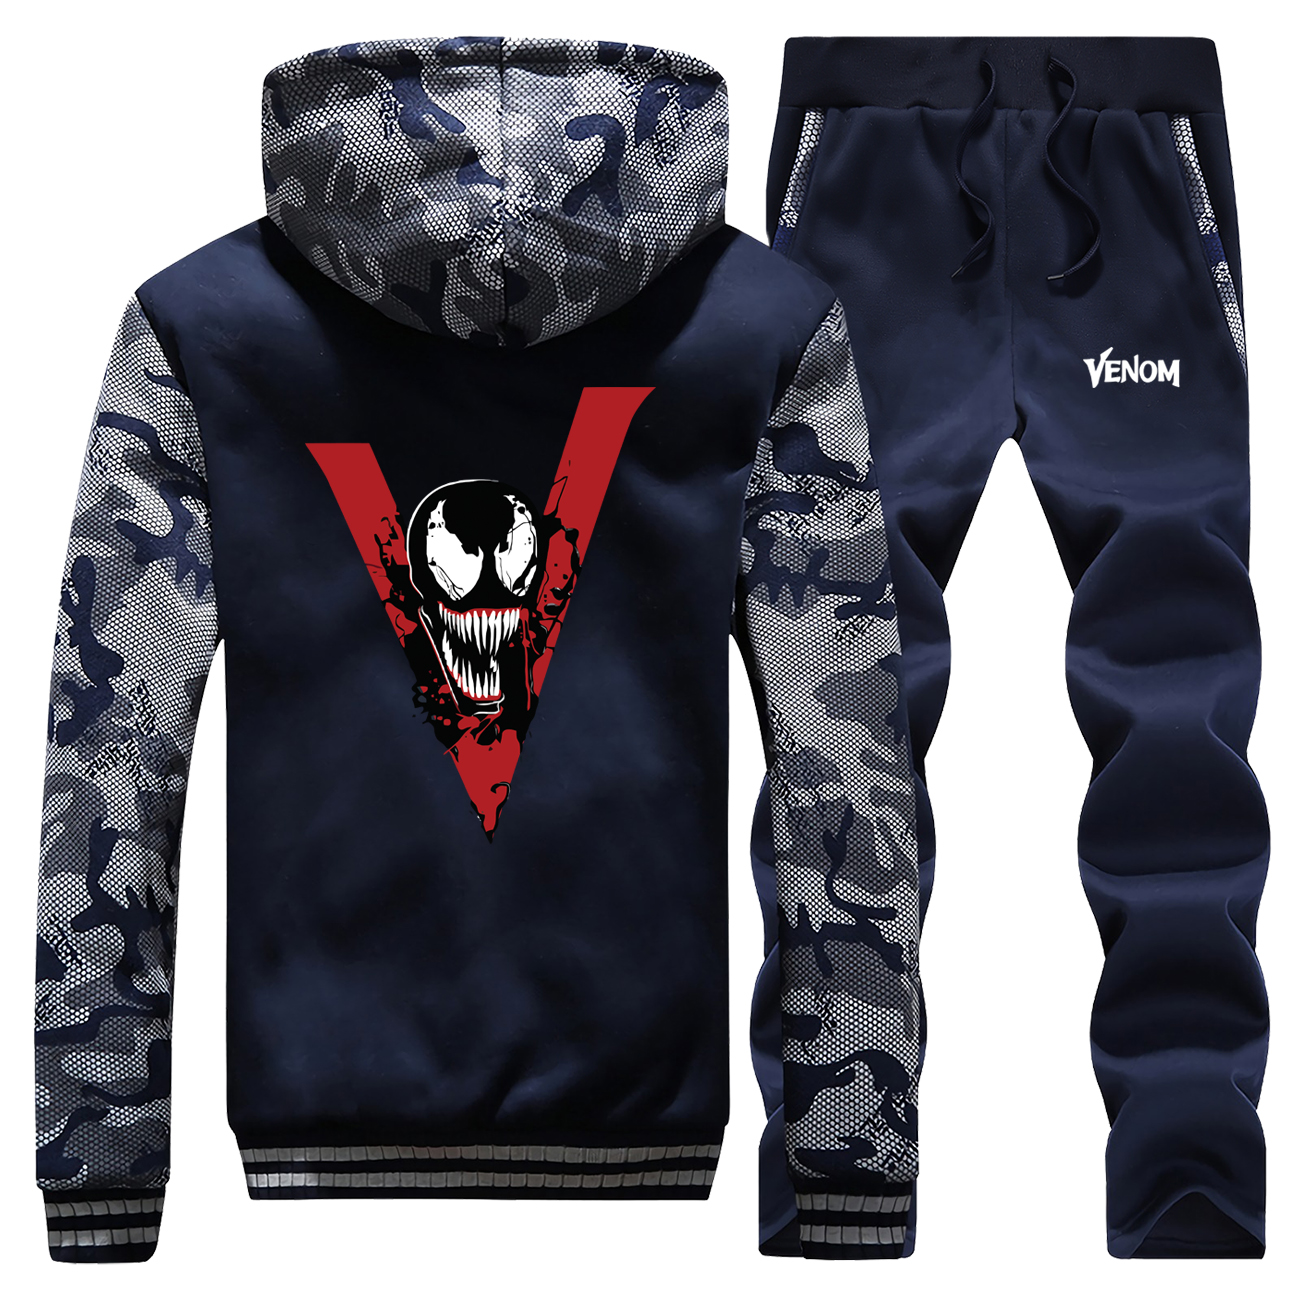 Venom Thicken Hoodies Men Fashion Brand Sweatshirt+Pants 2 Piece Sets Superhero Camo Jacket Mens Winter Hoodie Warm Suit Coats